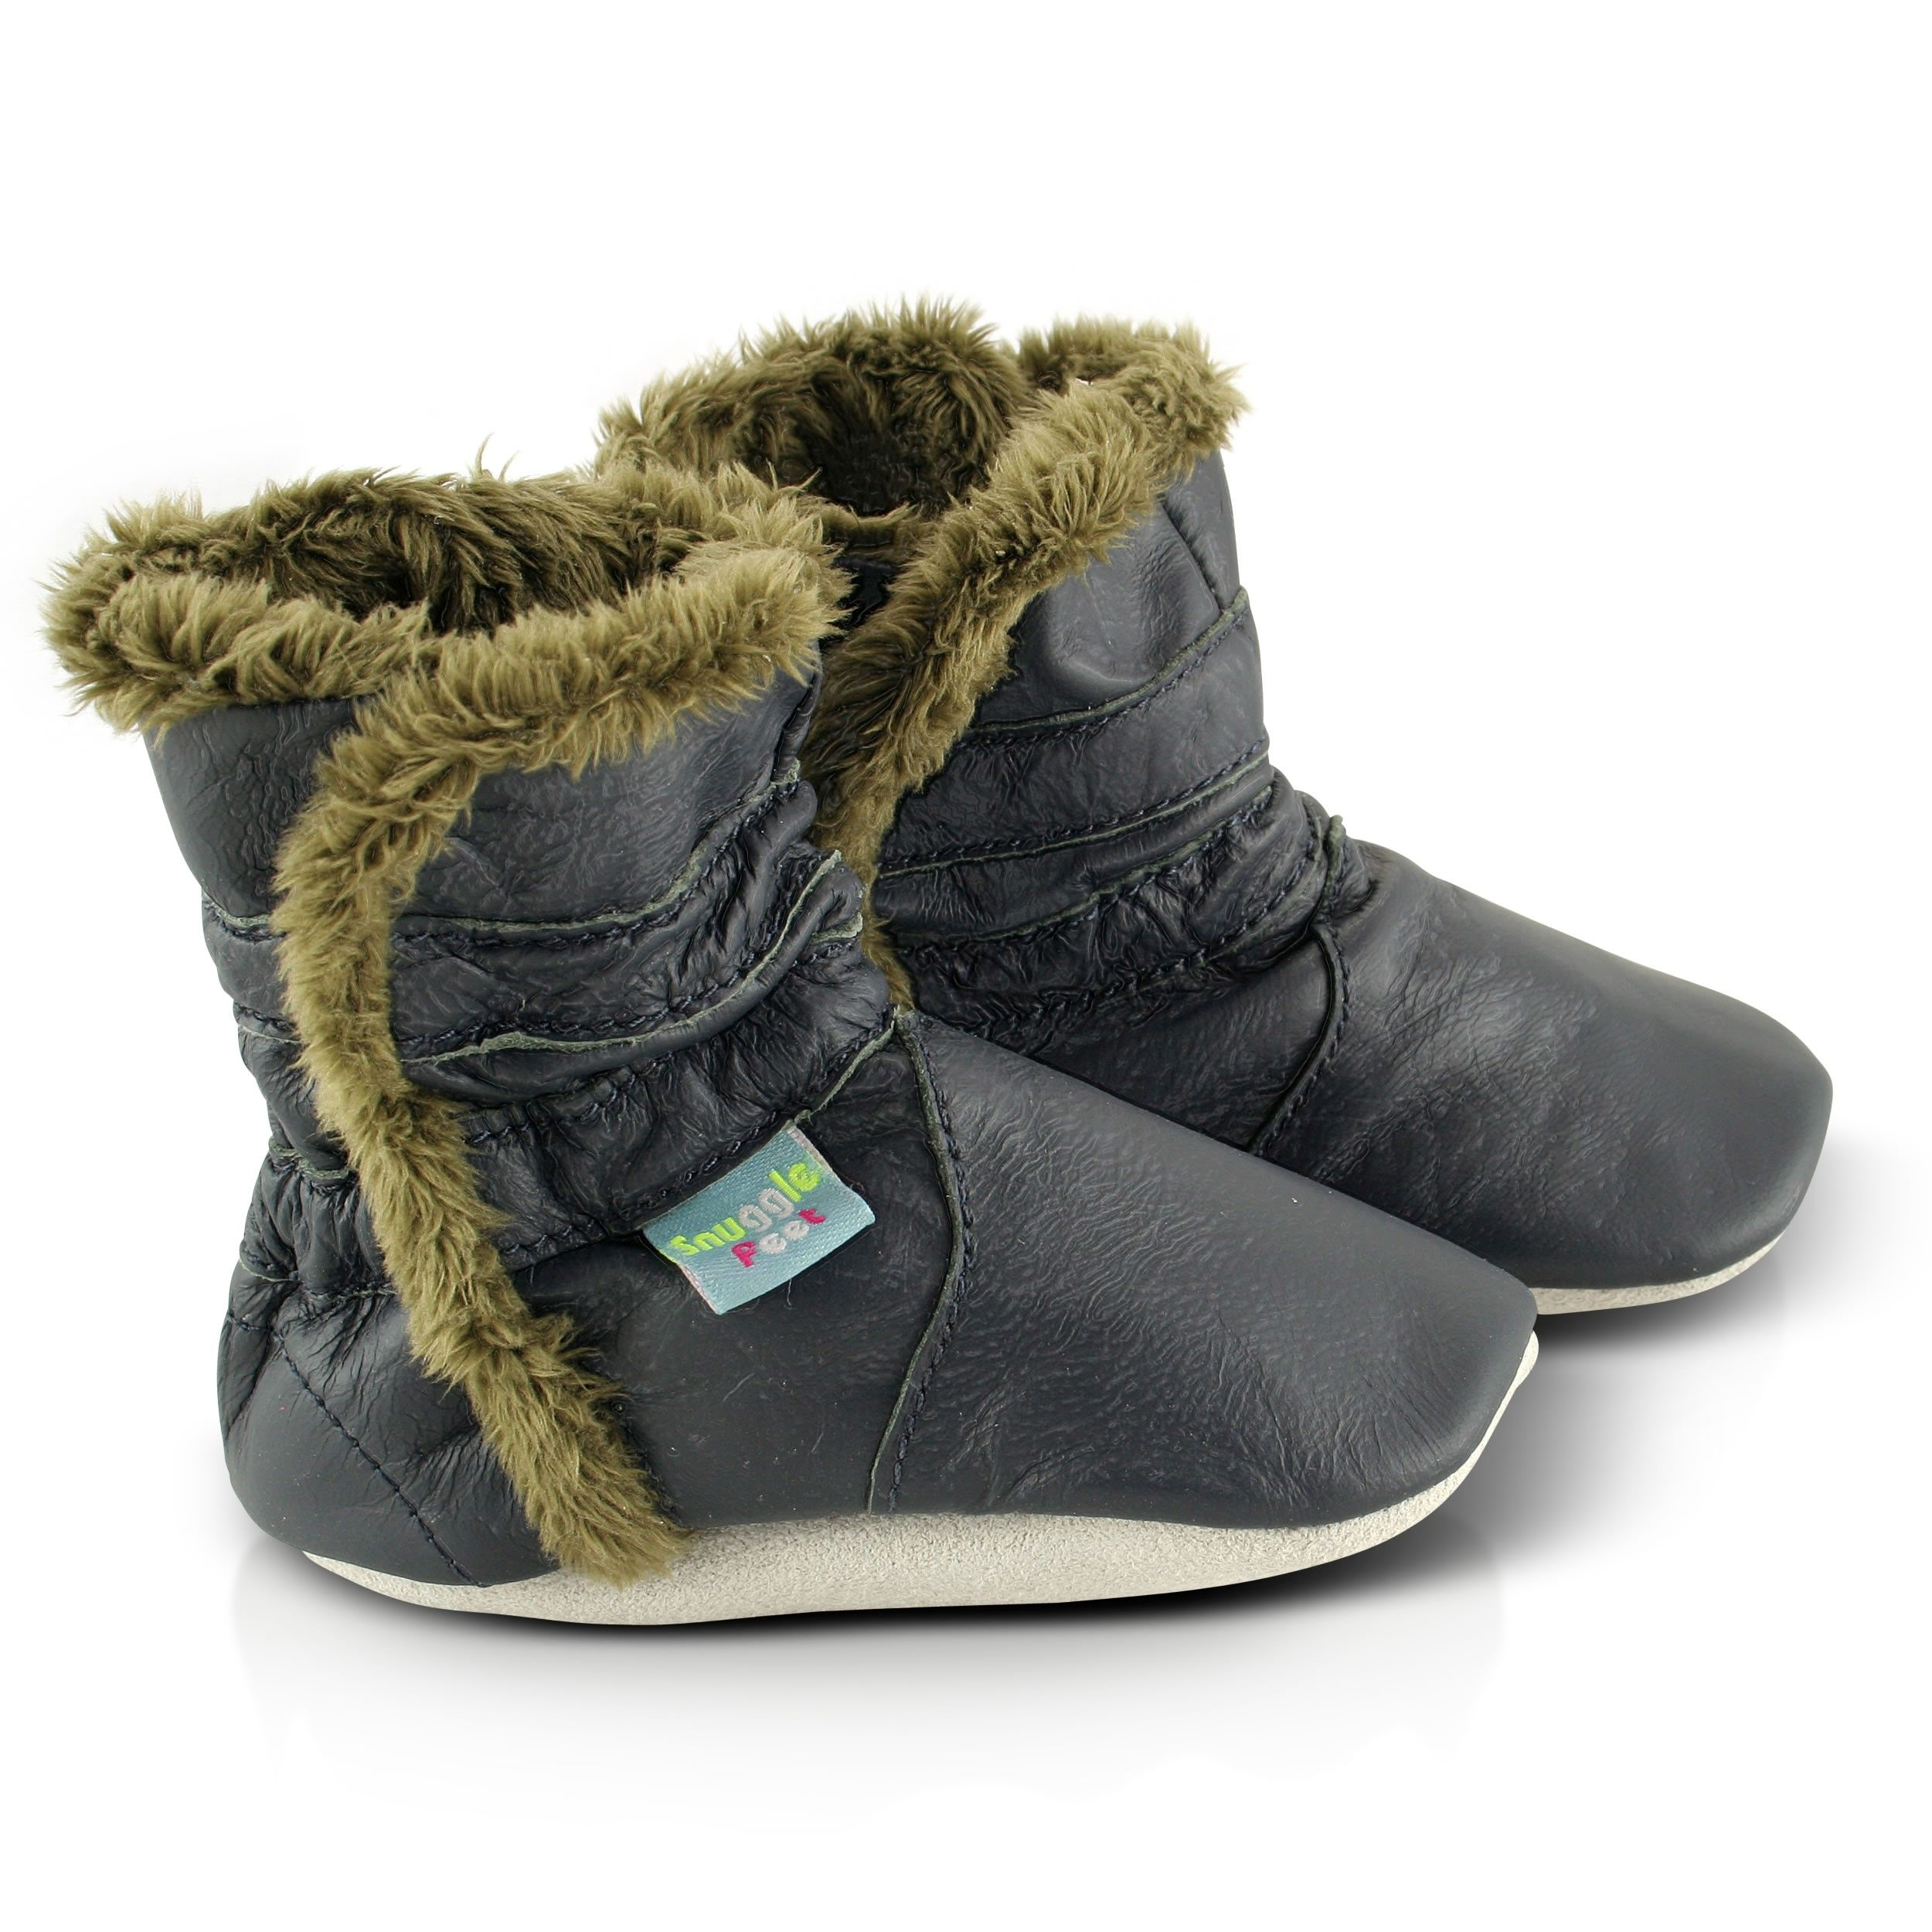 Baby Boy OR Girl Pre-walker Snuggle bootie with soft Fleece lining NAVY OR TAN